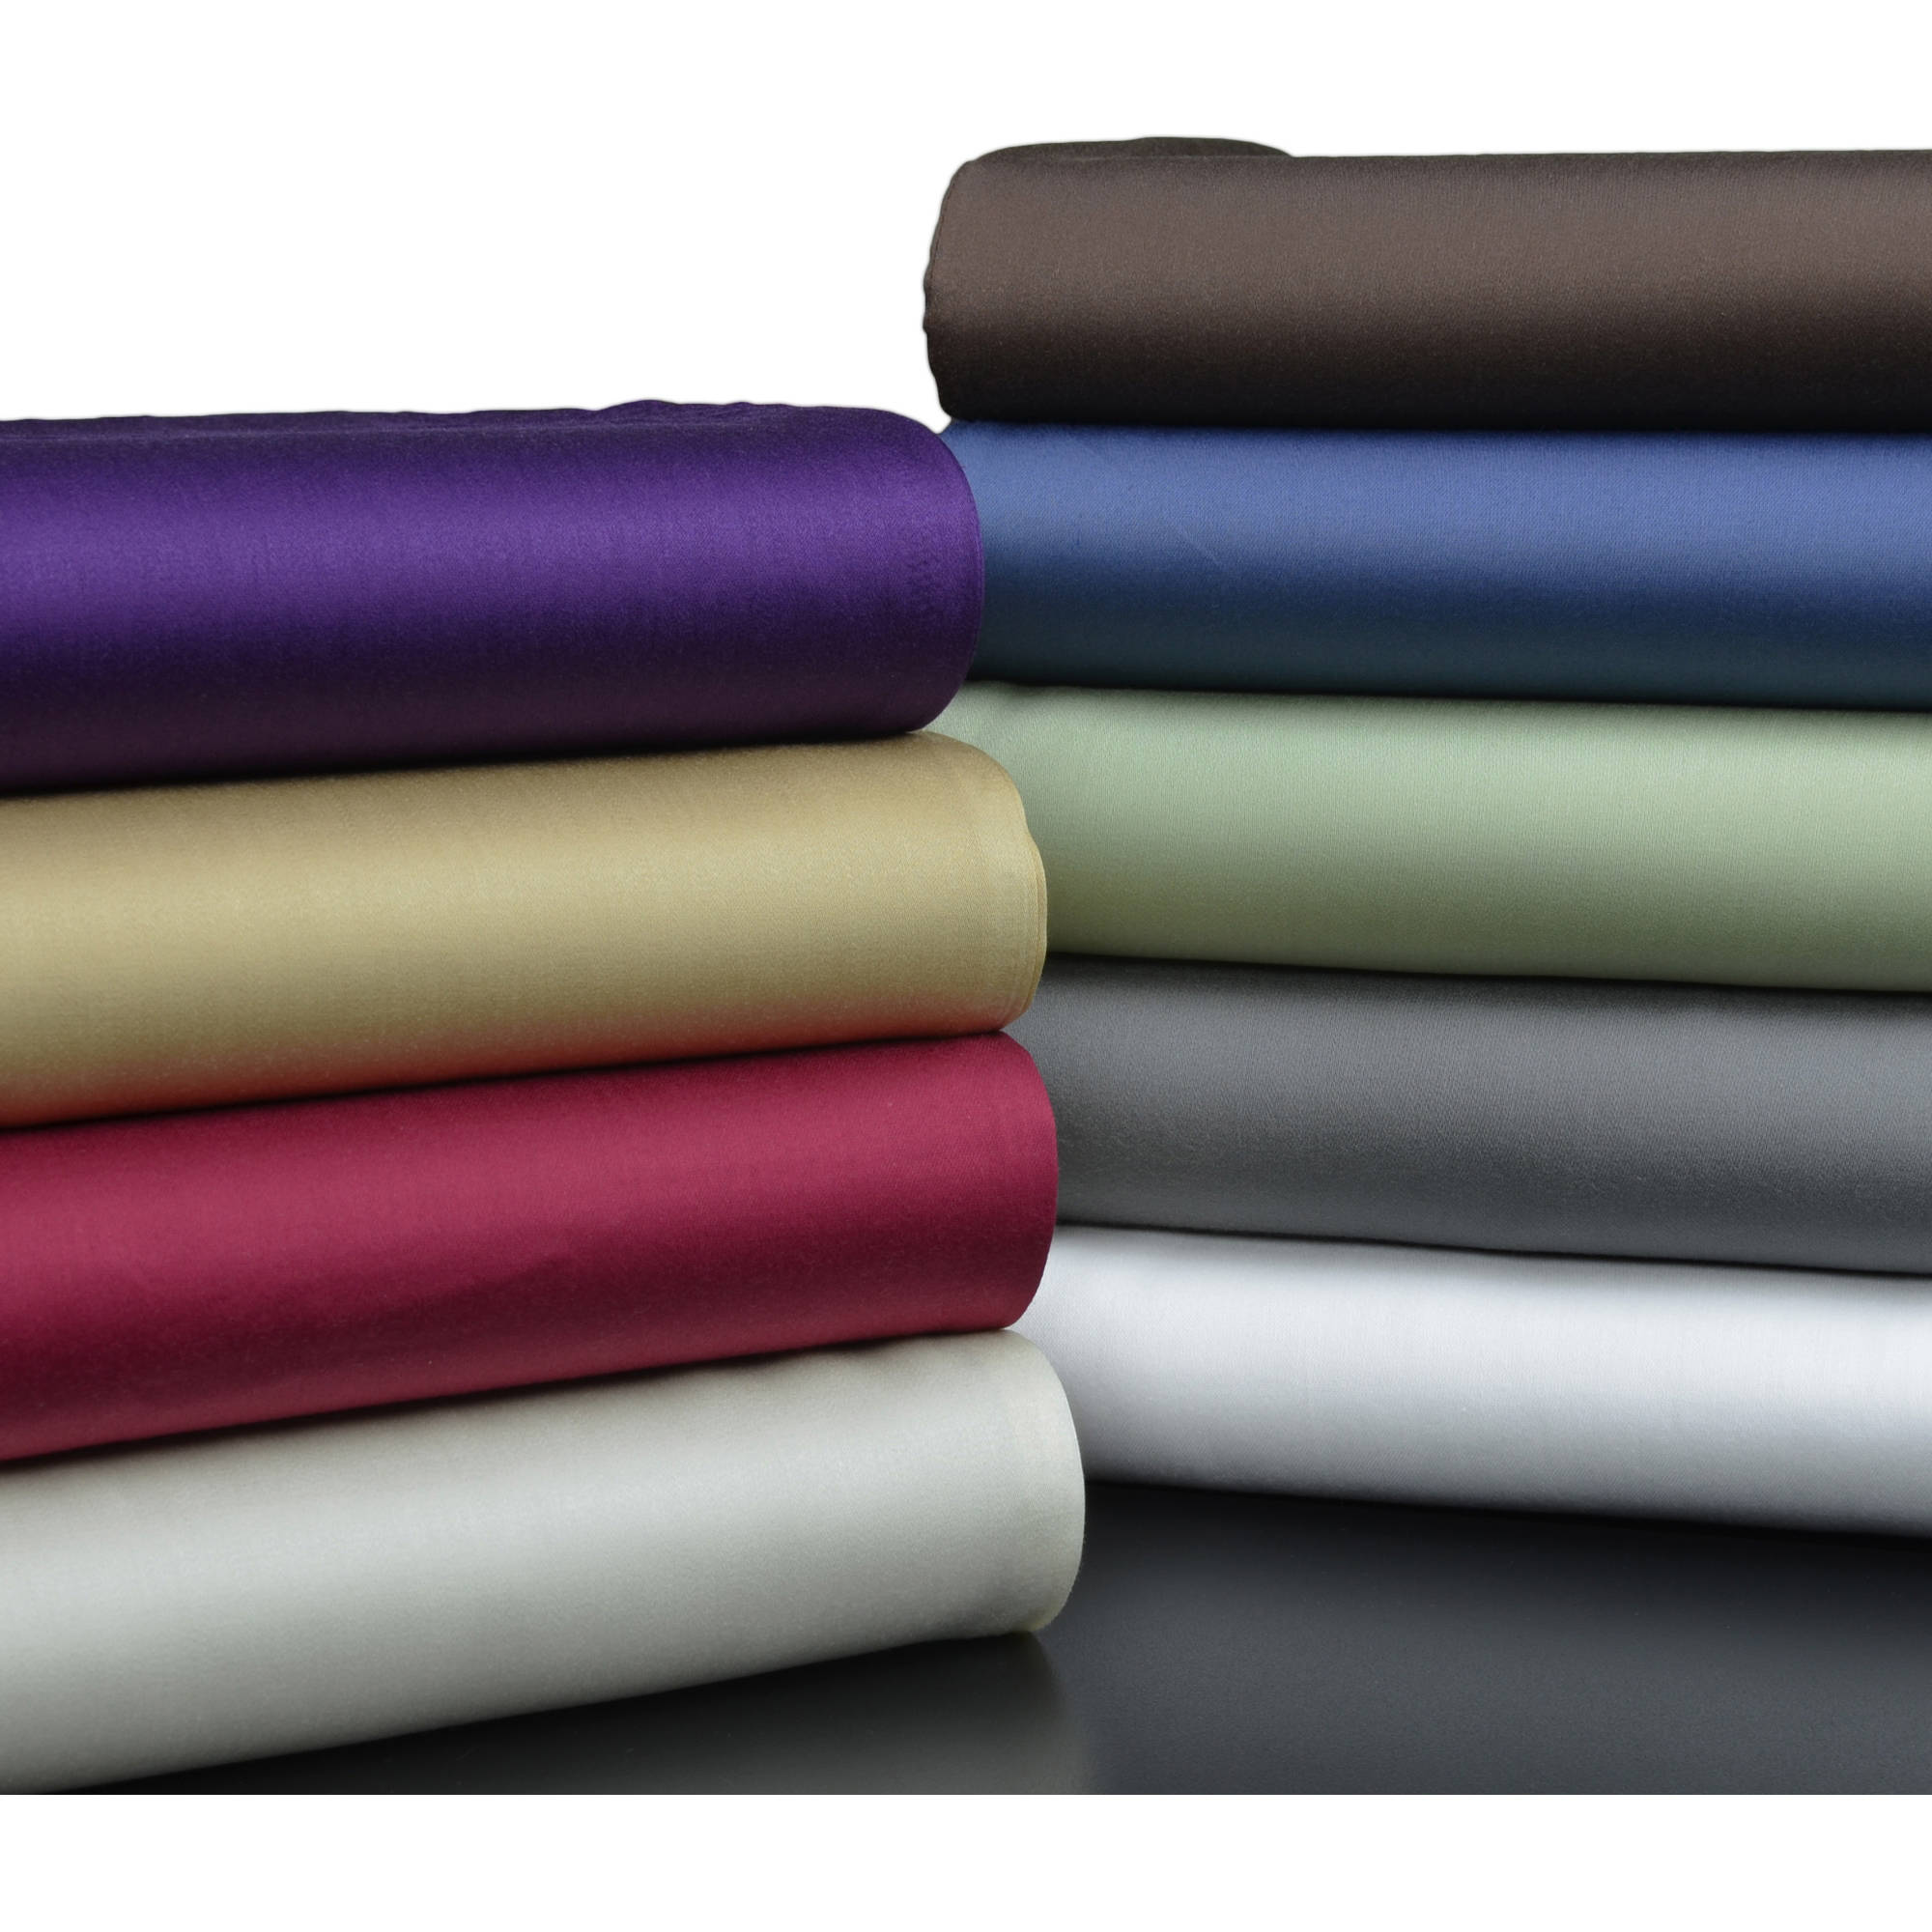 Best Bamboo Sheets - Brielle 100-Percent Rayon Bamboo Sheet Set, Twin, White Review